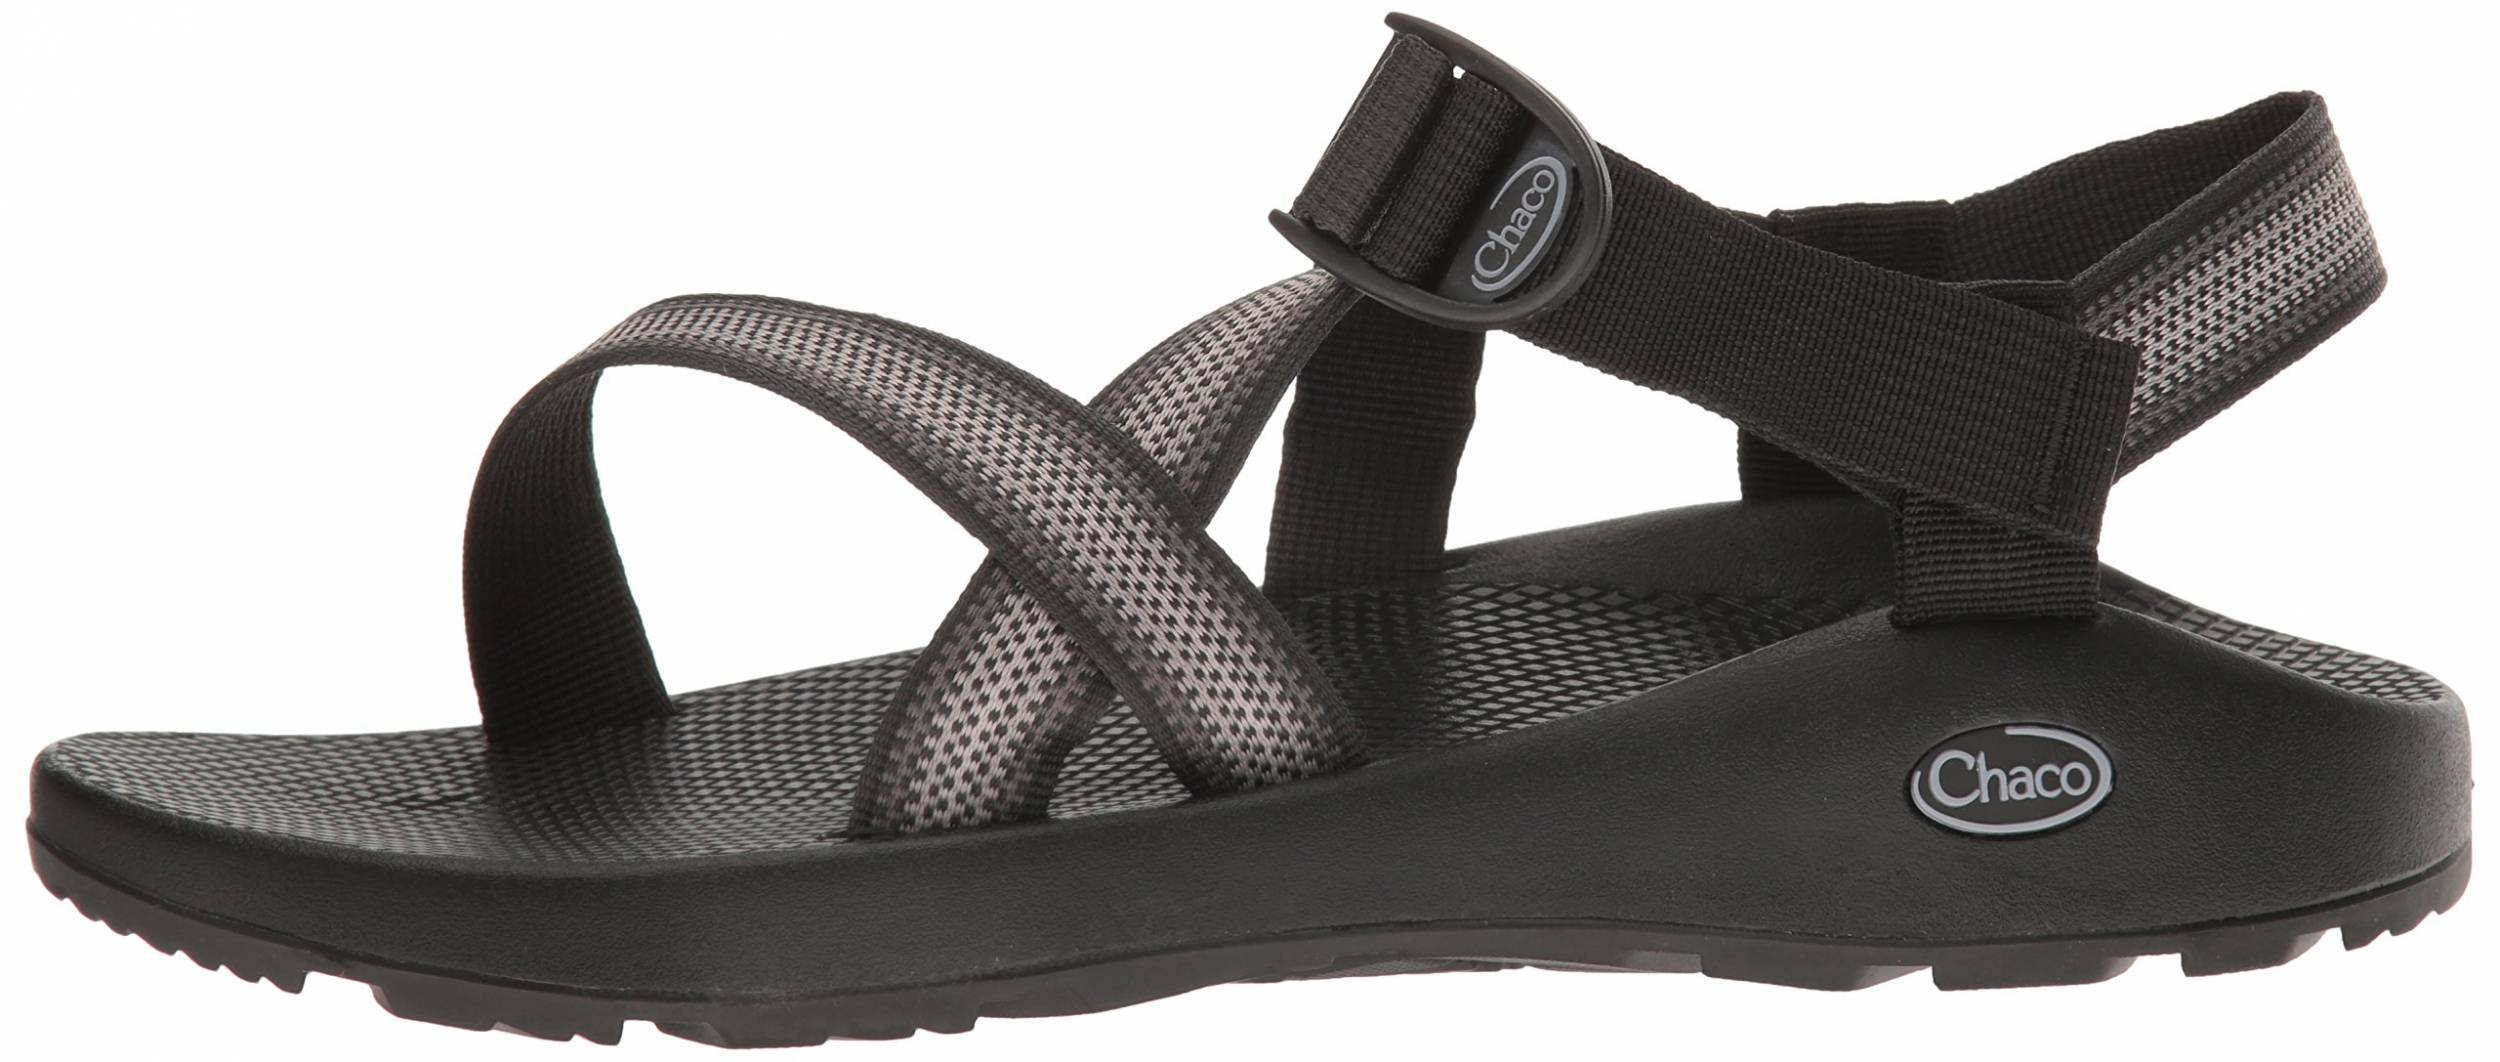 Only $28 + Review of Chaco Z/1 Classic